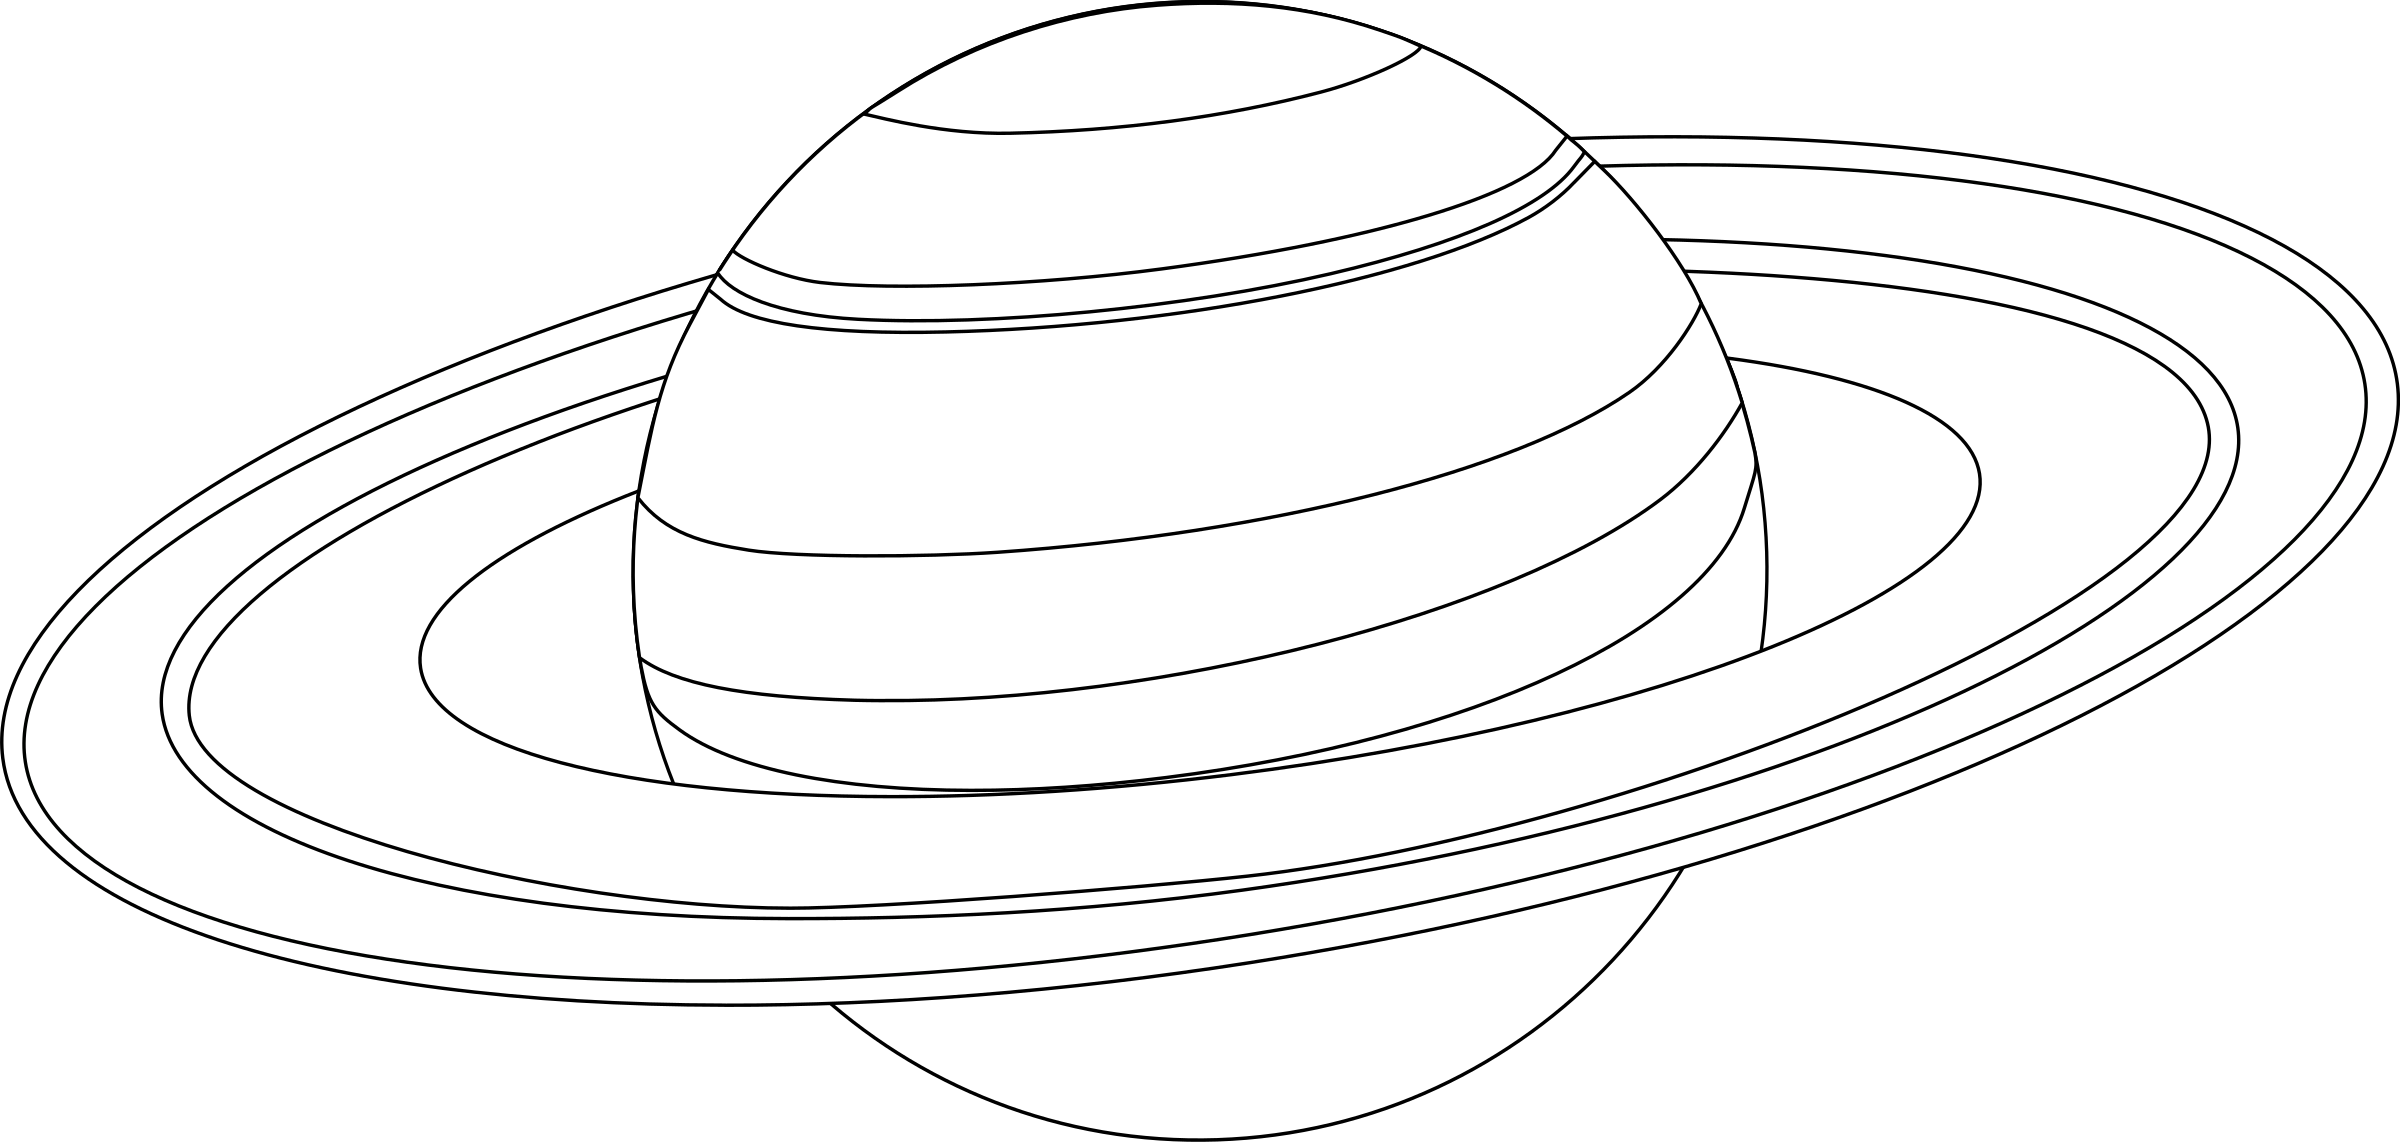 free planet saturn coloring pages - photo#22